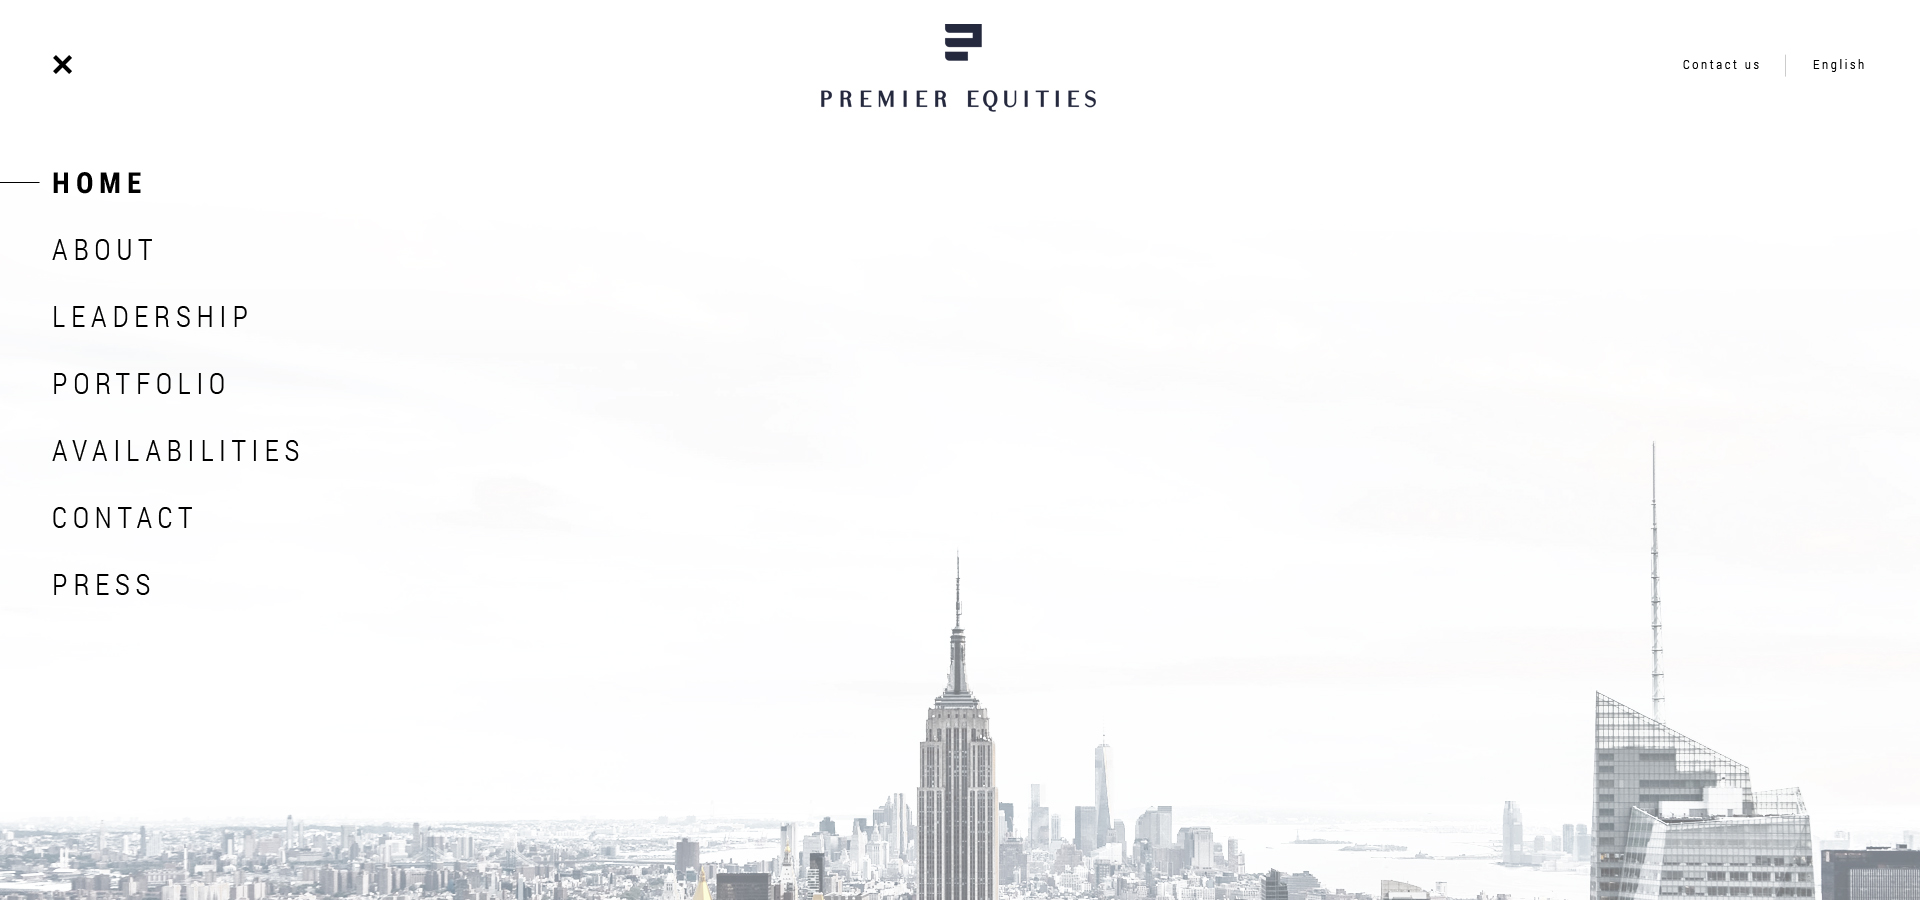 Premier Equities – menu view